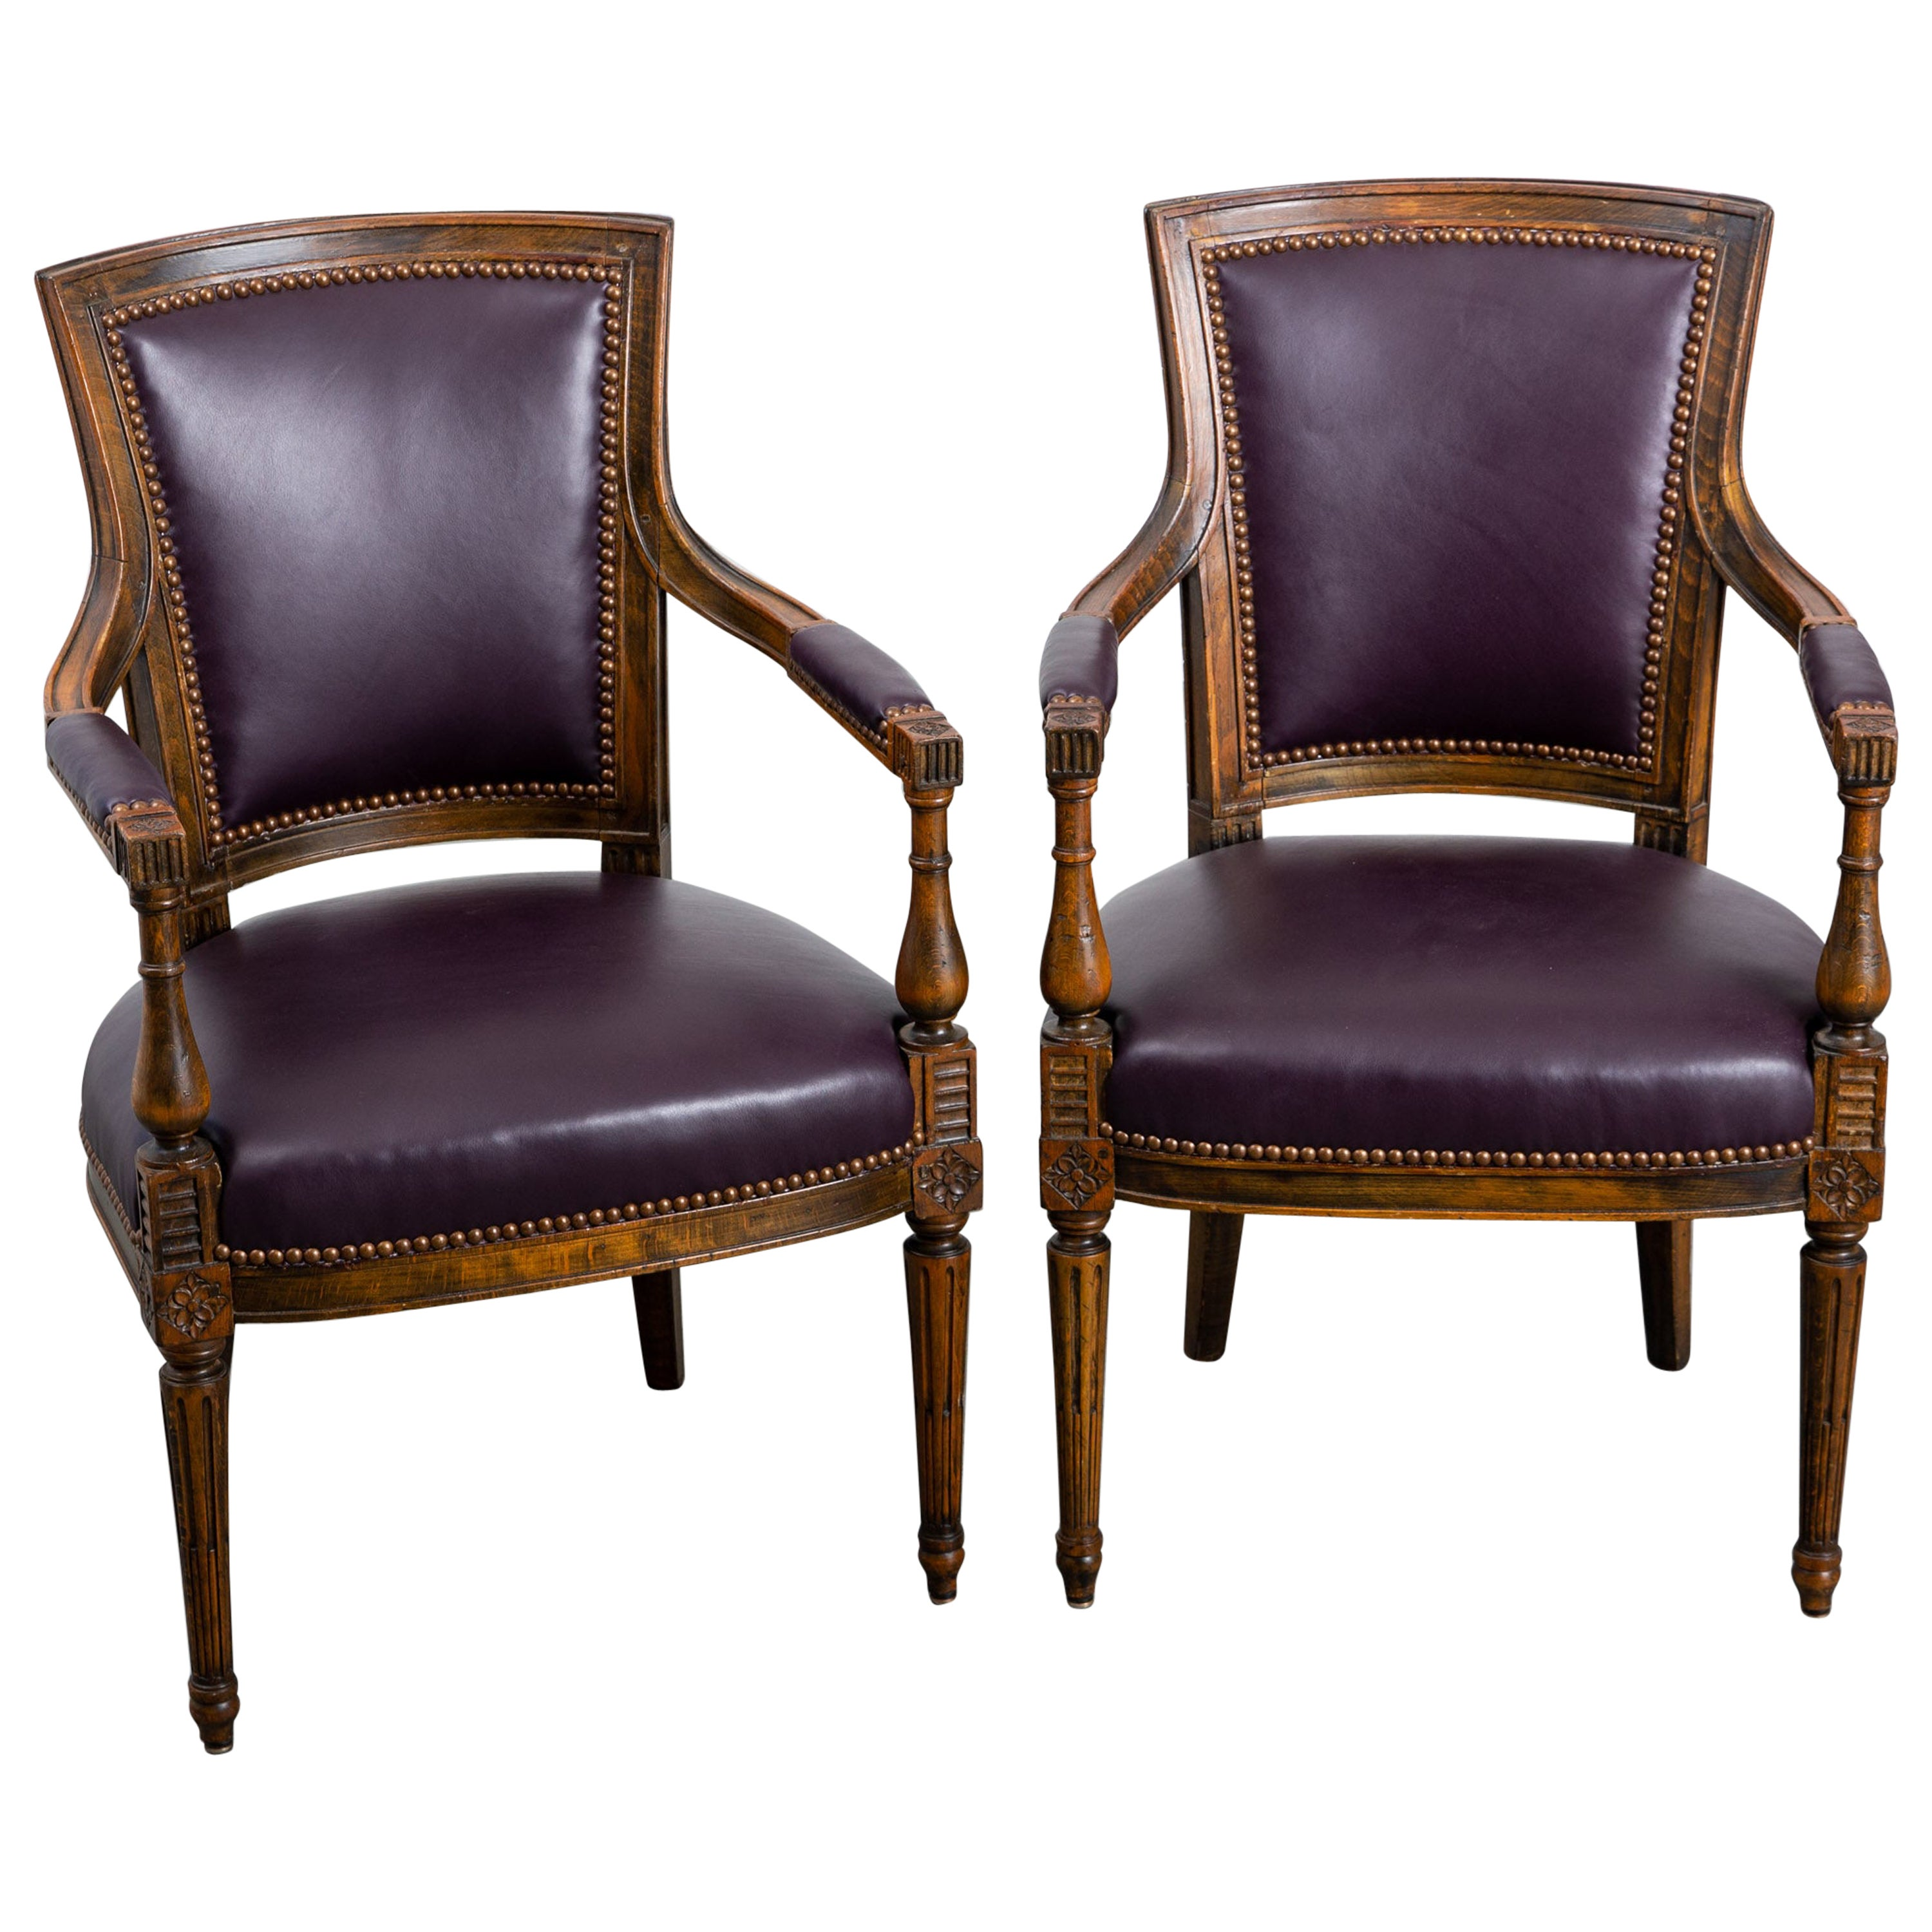 Pair of Early 20th Century Carved Wood Directoire Armchairs